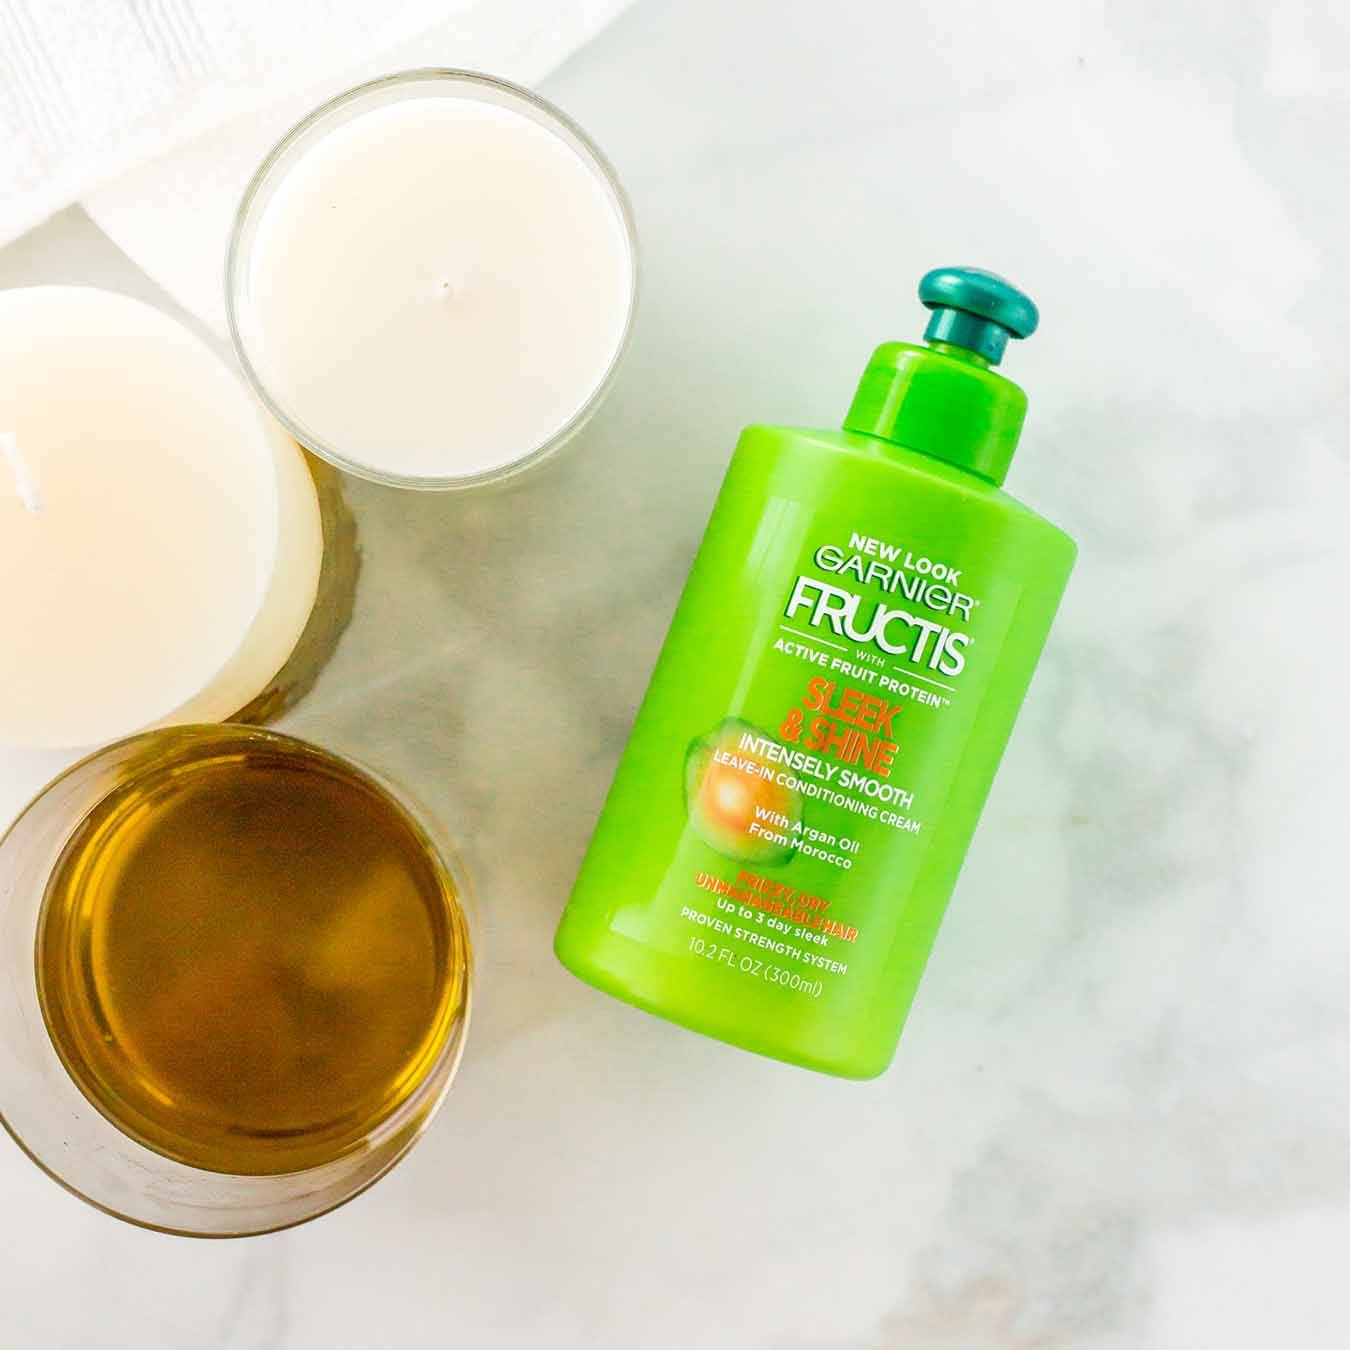 Garnier Fructis Sleek & Shine Leave-In Conditioner on white marble next to a white hand towel, white candles, and a glass of oil.